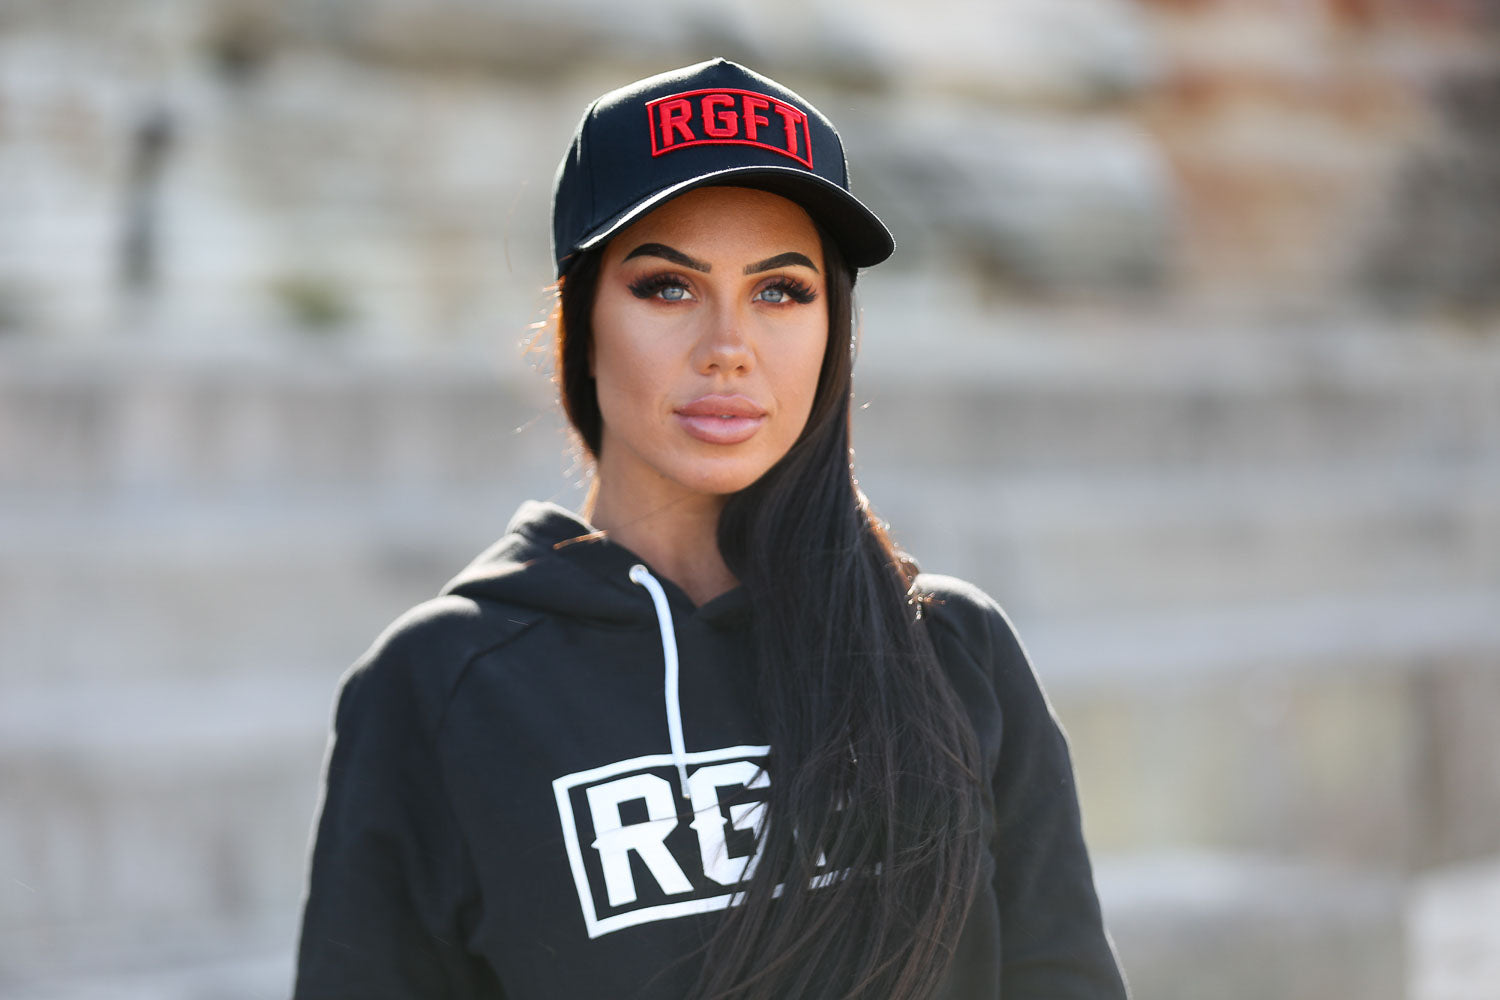 RGFT Boxed A Frame Black/Red Snapback Bondi Beach